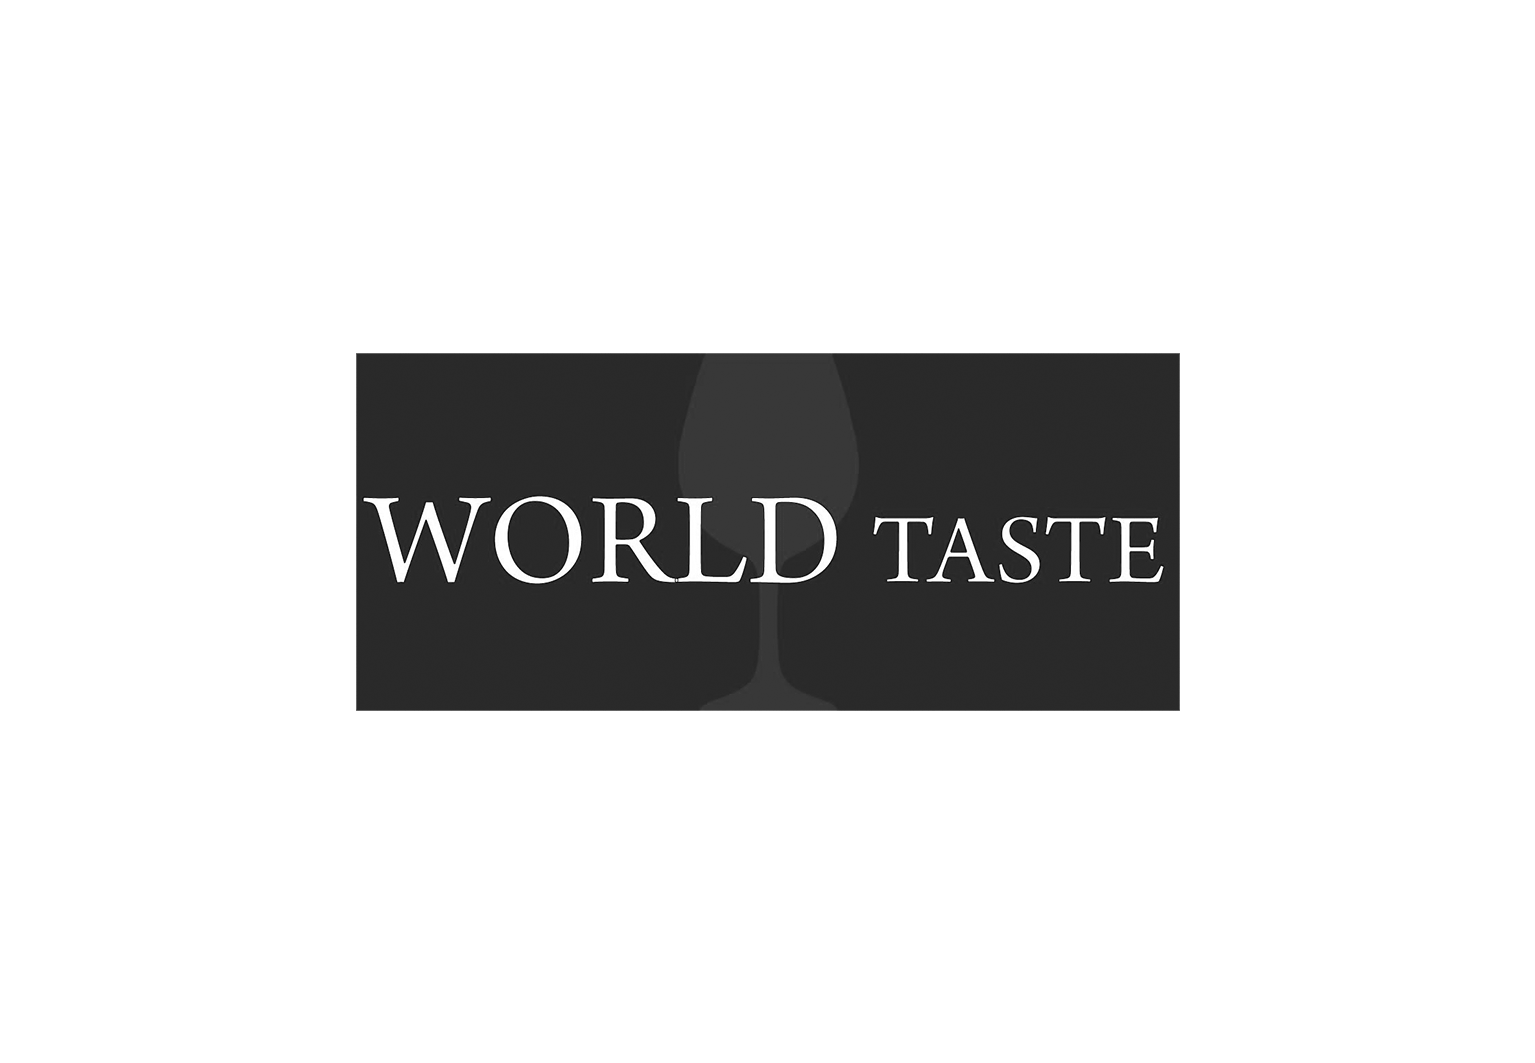 world_taste_web_bw.png